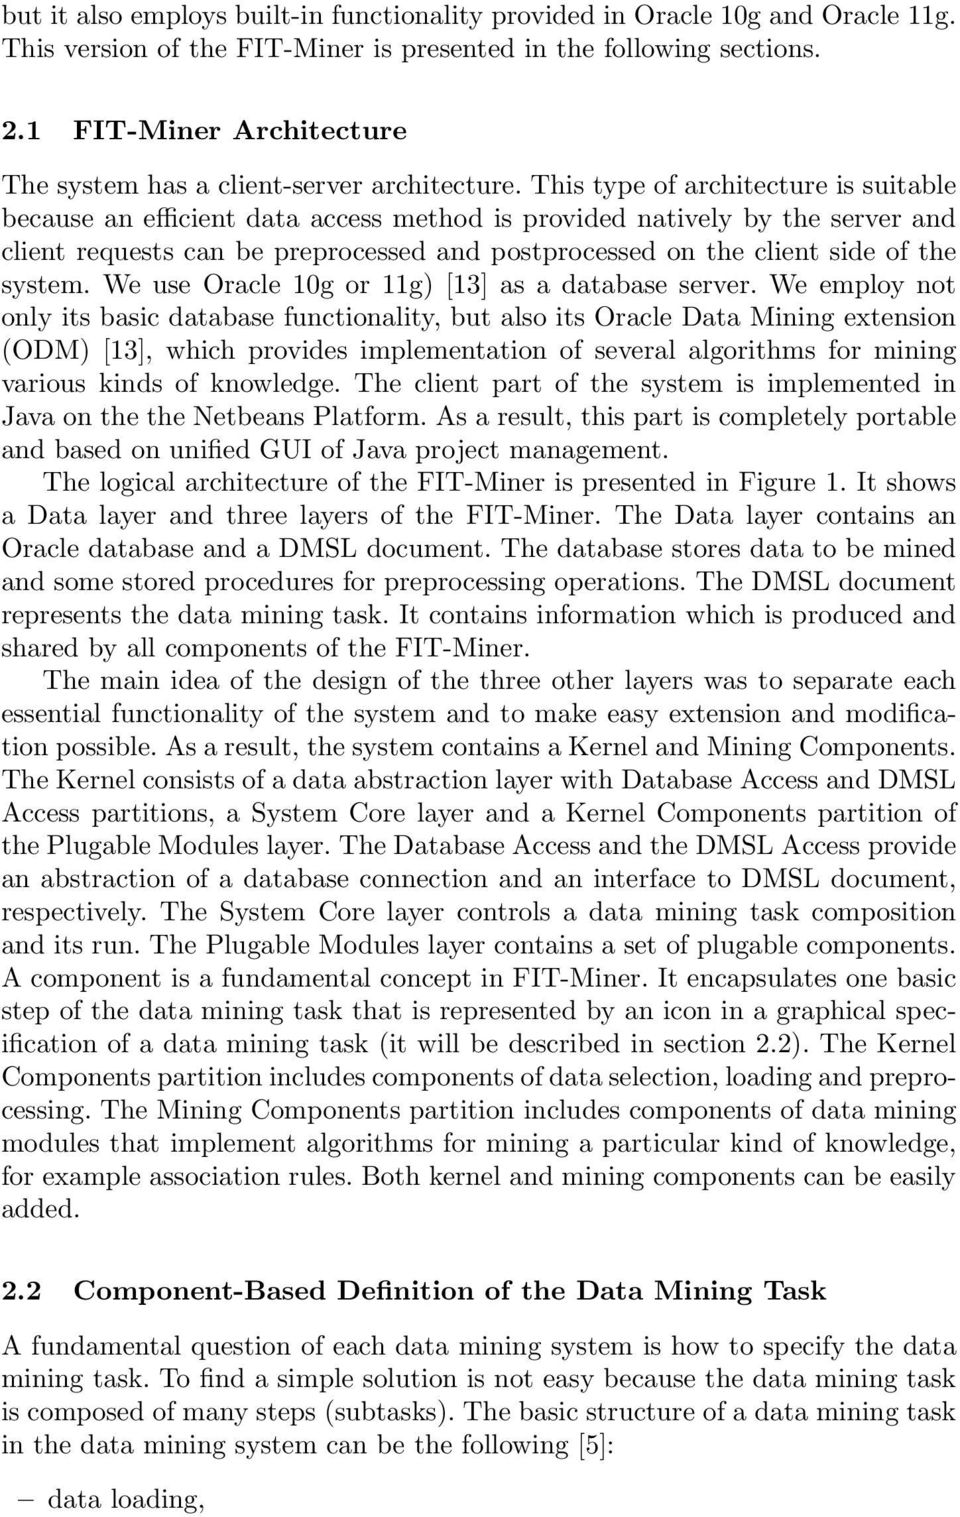 Knowledge Discovery in Data with FIT-Miner - PDF